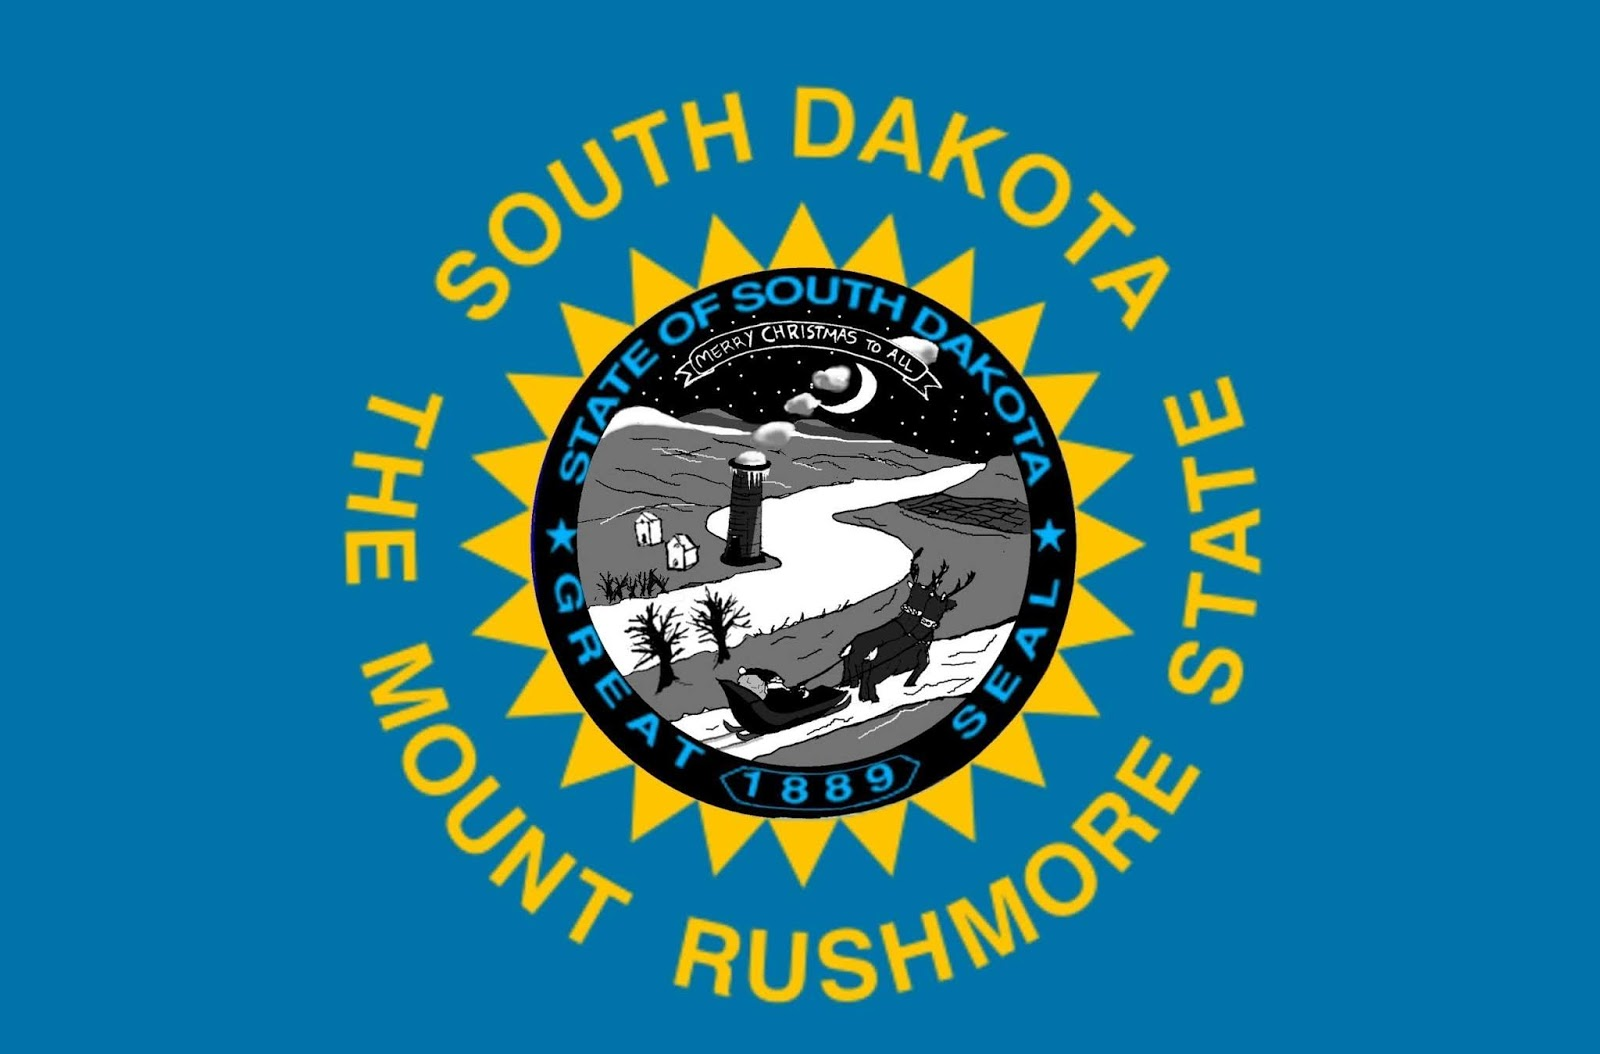 b6a5e37bdb69 Deep in the heart of America is Oklahoma and South Dakota. In this post